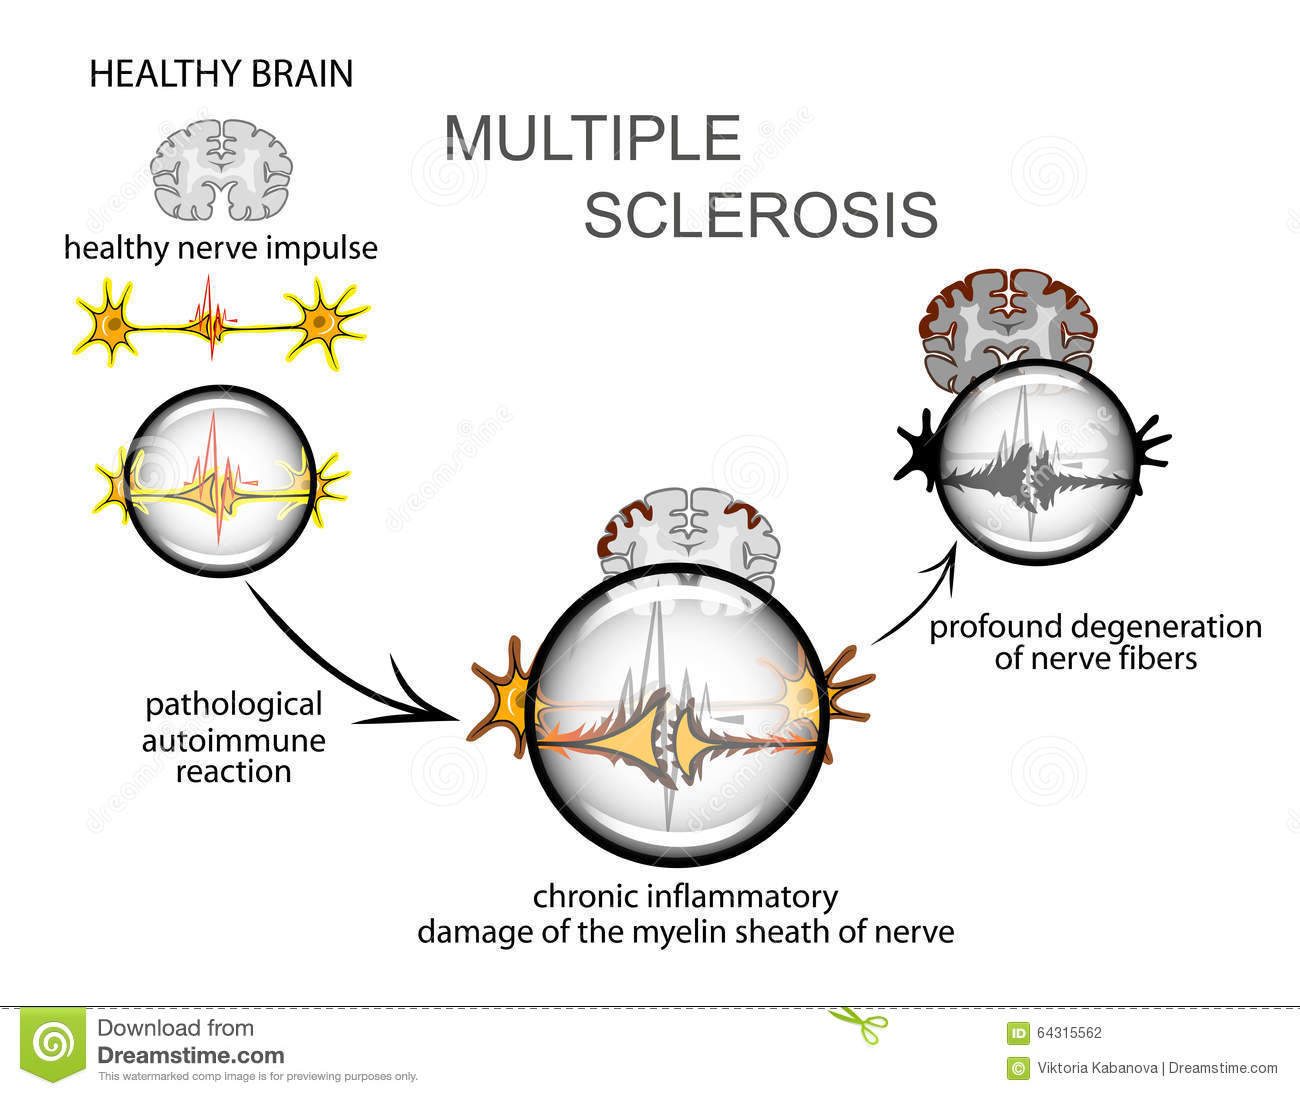 an overview of the neurological illness multiple sclerosis 1106 parkinsonian syndrome 1107 cerebral palsy 1108 spinal cord  disorders 1109 multiple sclerosis 1110 amyotrophic lateral sclerosis (als)  1111.